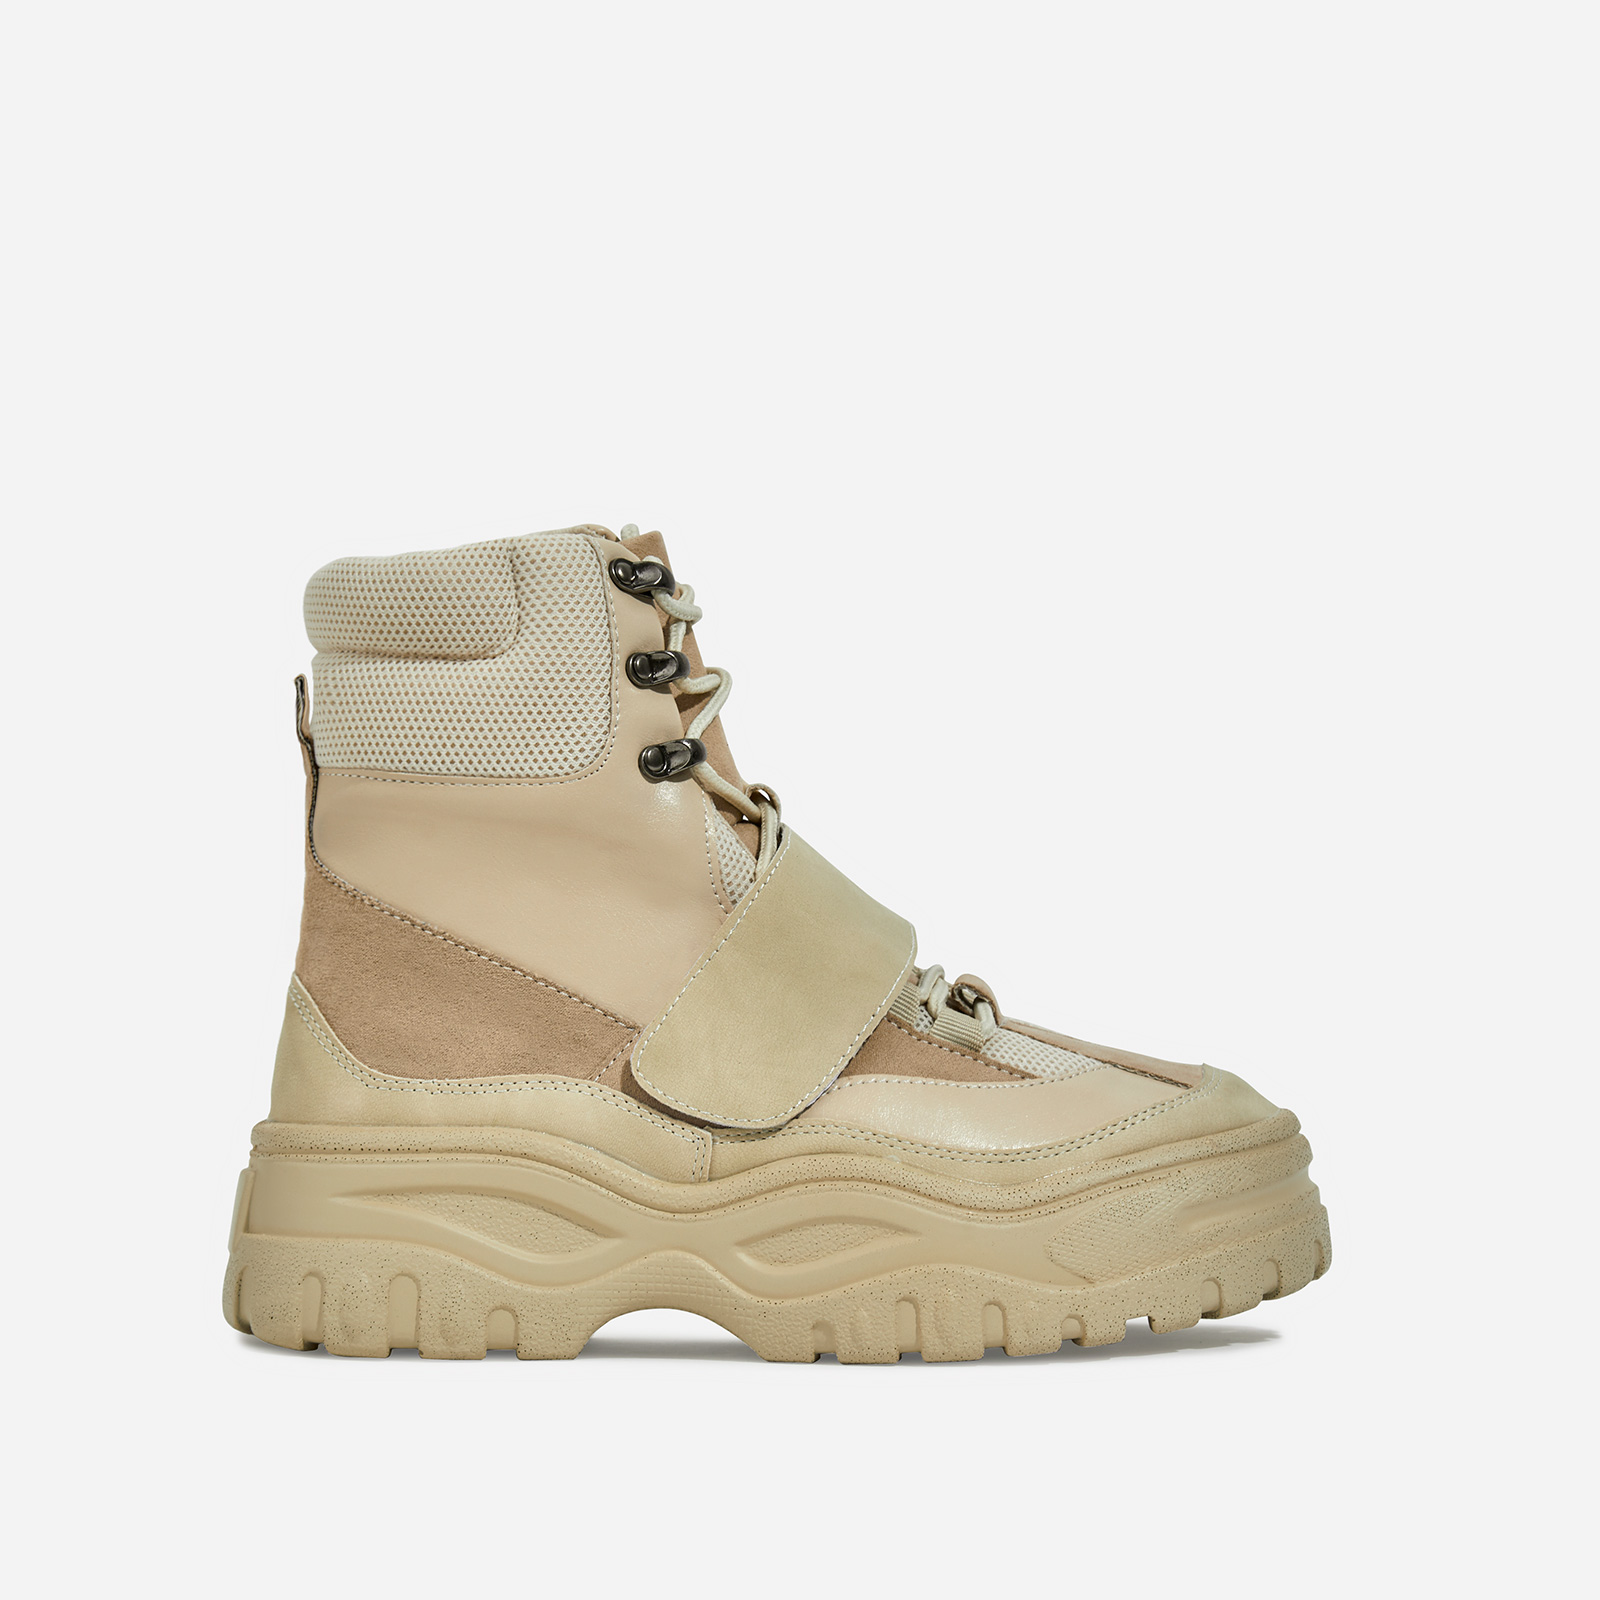 Rover Lace Up Ankle Hiker Boot In Nude Faux Leather And Suede